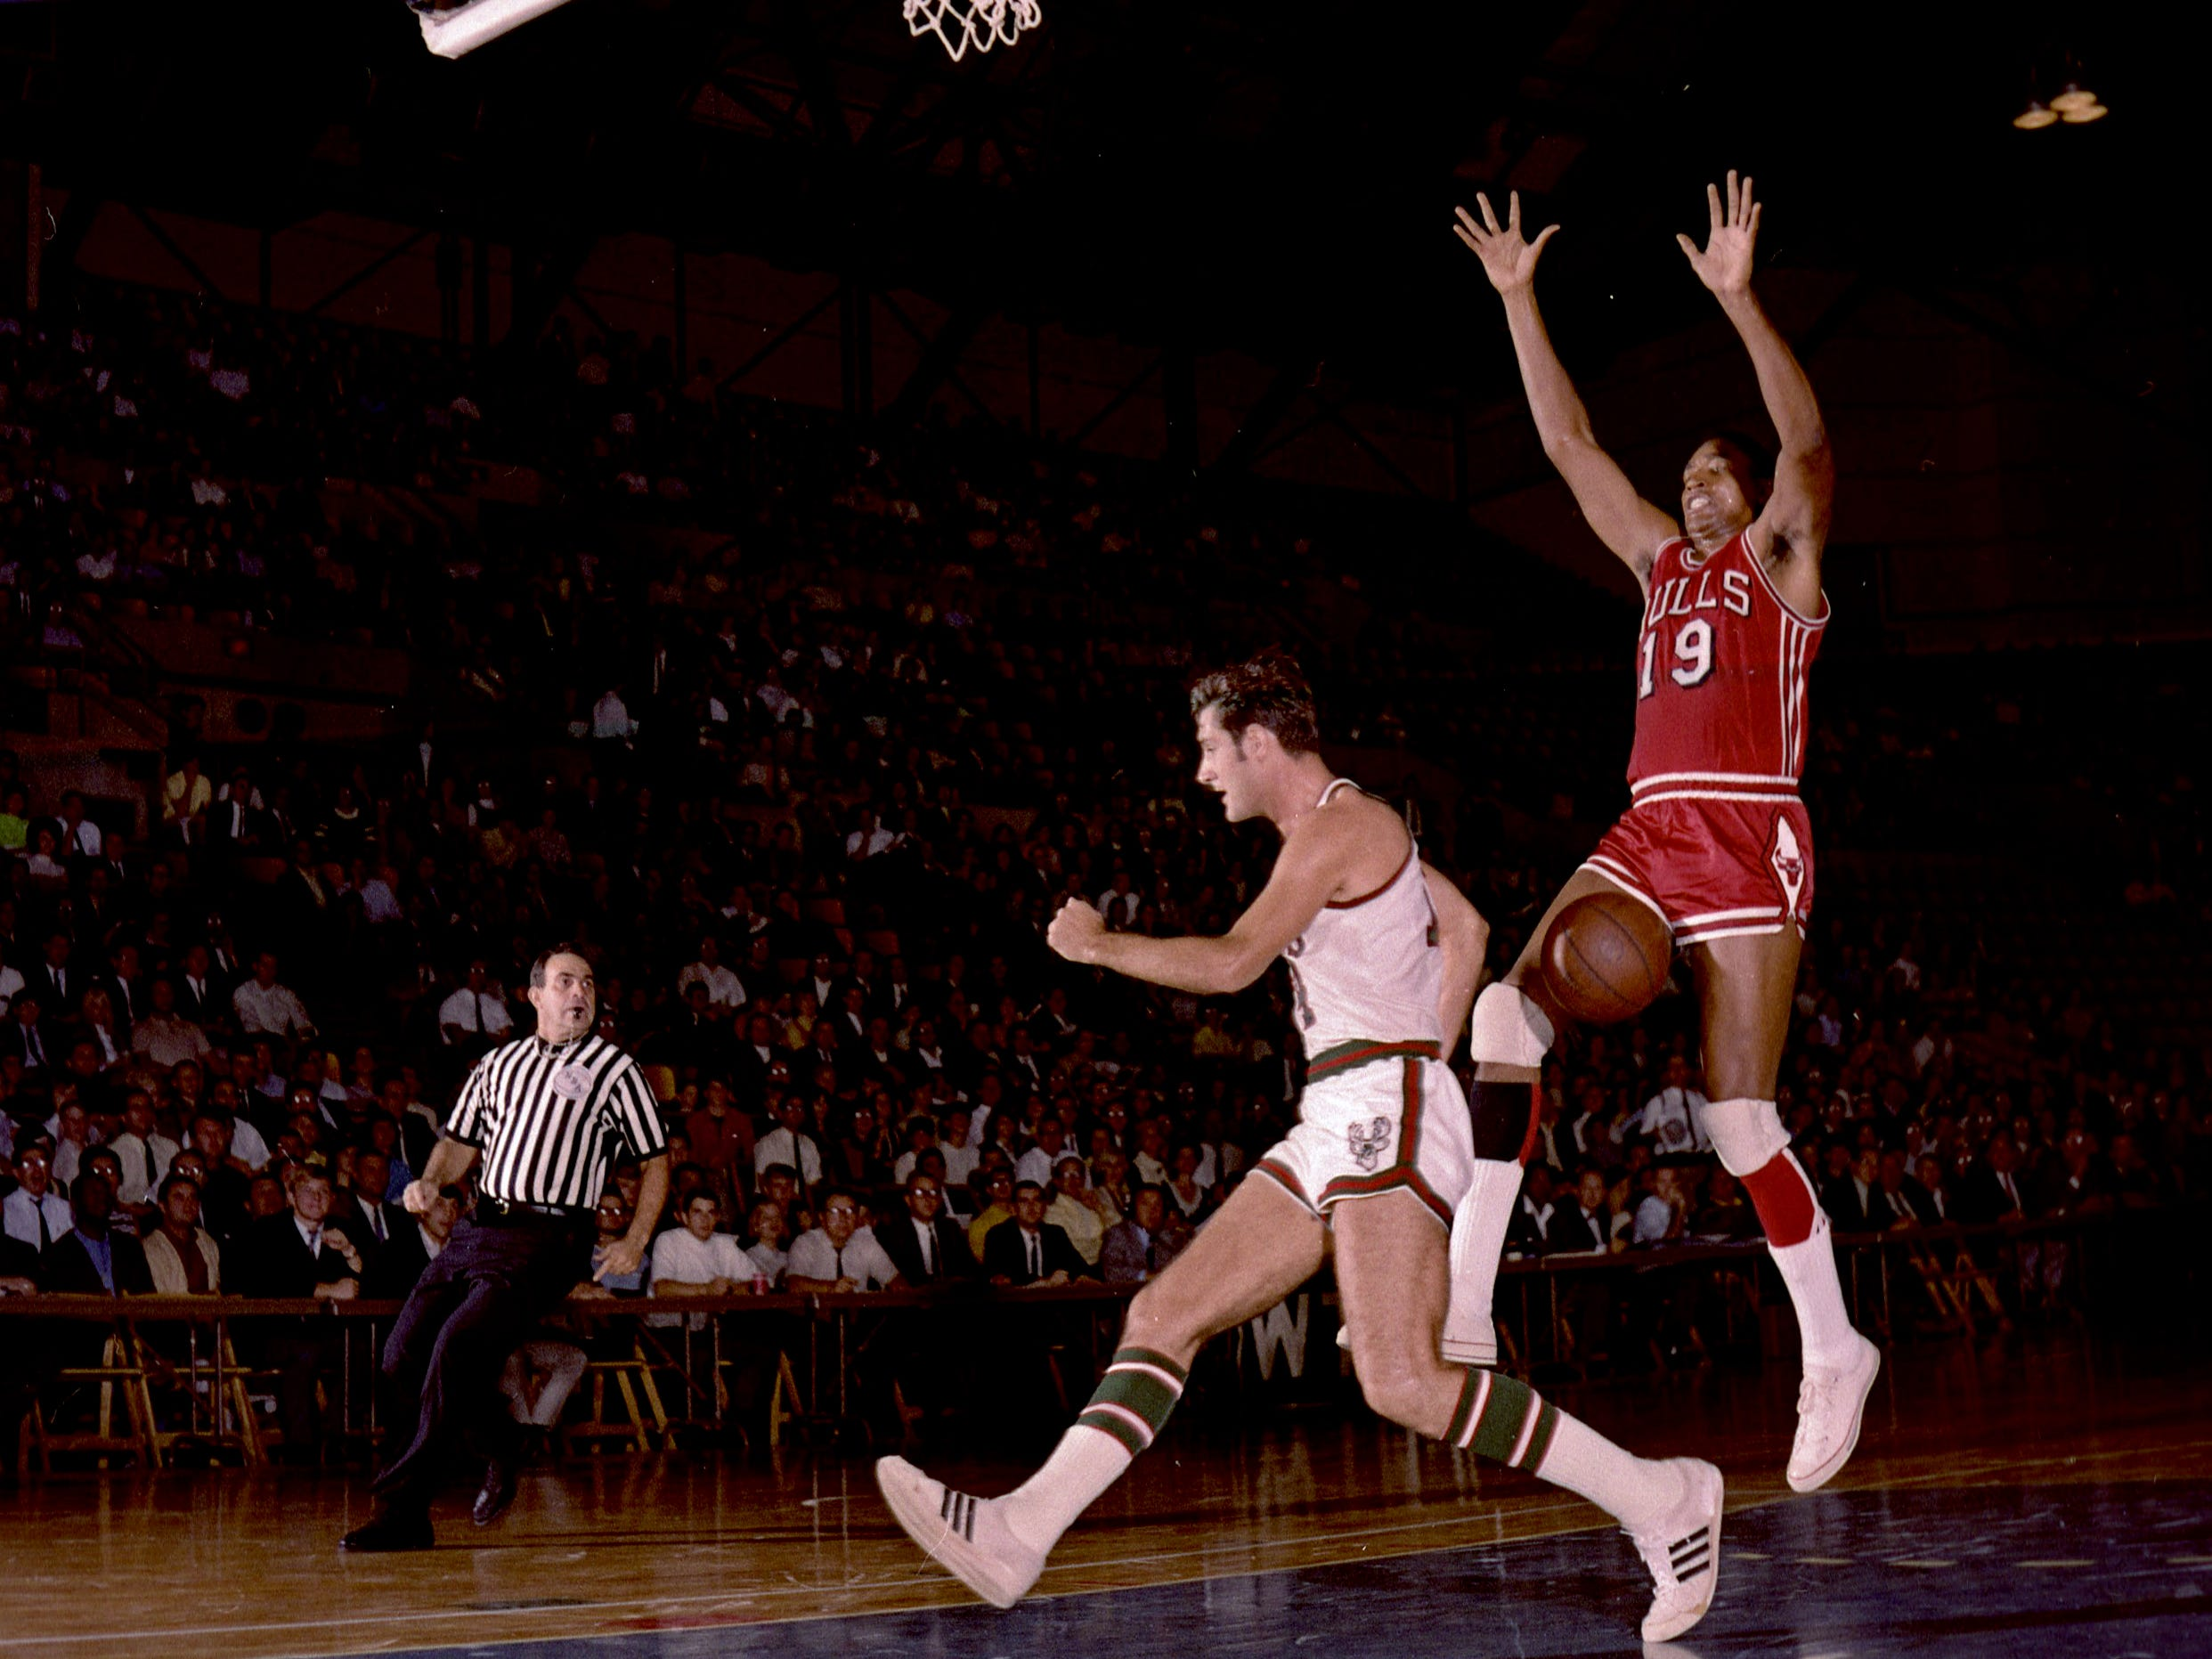 Milwaukee Bucks guard Jon McGlocklin strips the ball from Chicago Bulls forward Bob Boozer during the Bucks' first-ever regular-season NBA game on Oct. 16, 1968, at the Milwaukee Arena. The Bucks lost, 89-84 .